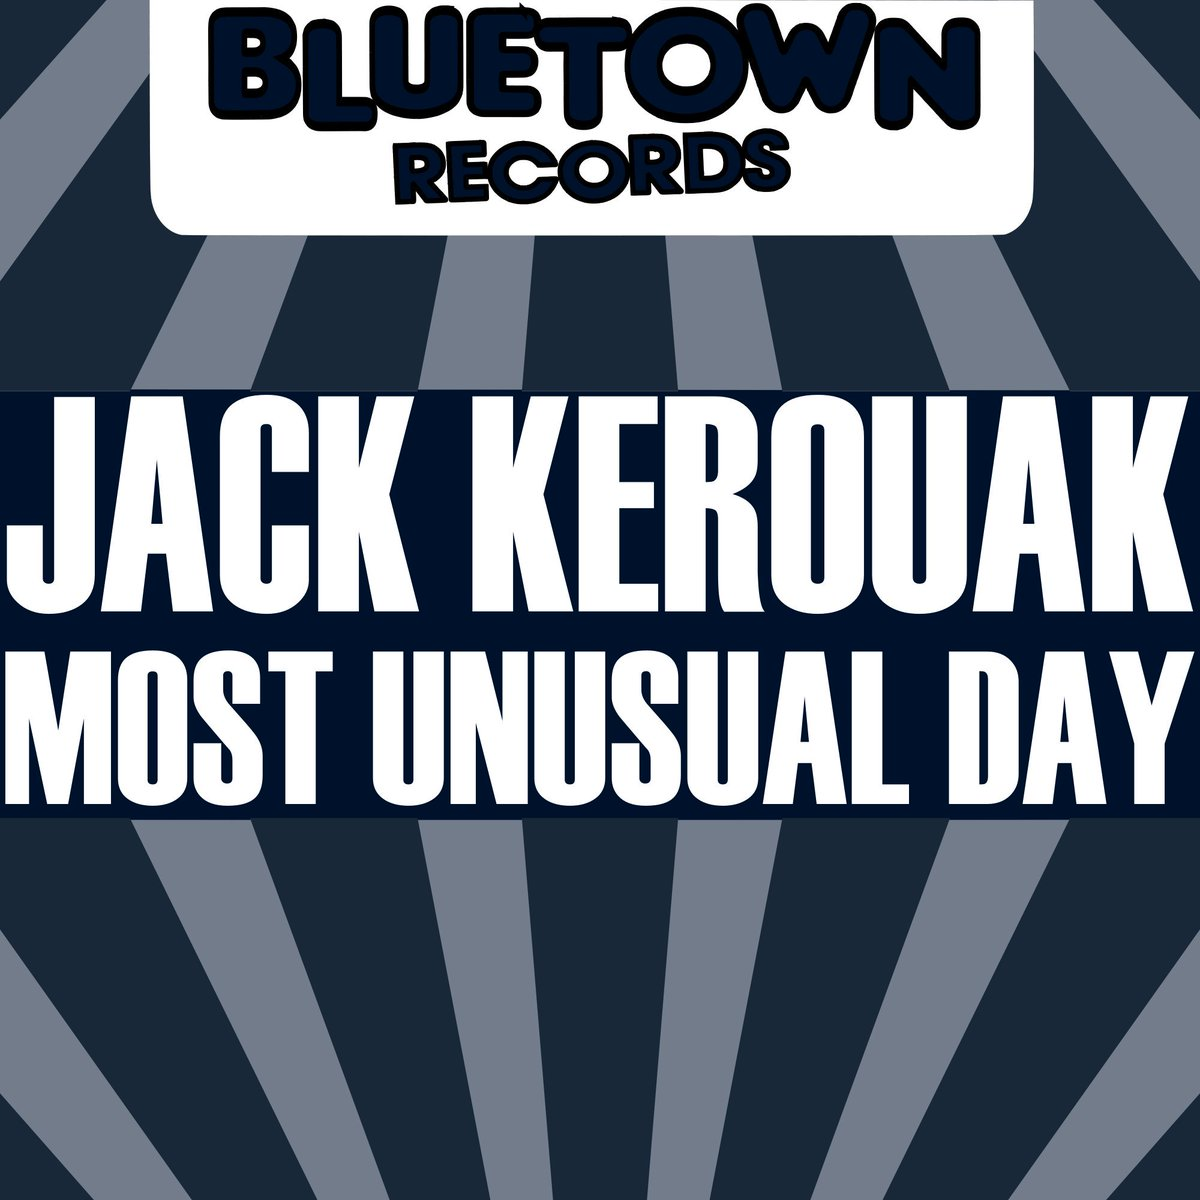 Out now! Jack Kerouak &quot;Most Unusual Day&quot;  http://www. traxsource.com/track/3024141/ most-unusual-day &nbsp; …  #housemusic #realhousemusic <br>http://pic.twitter.com/JpI9GYLSQ8